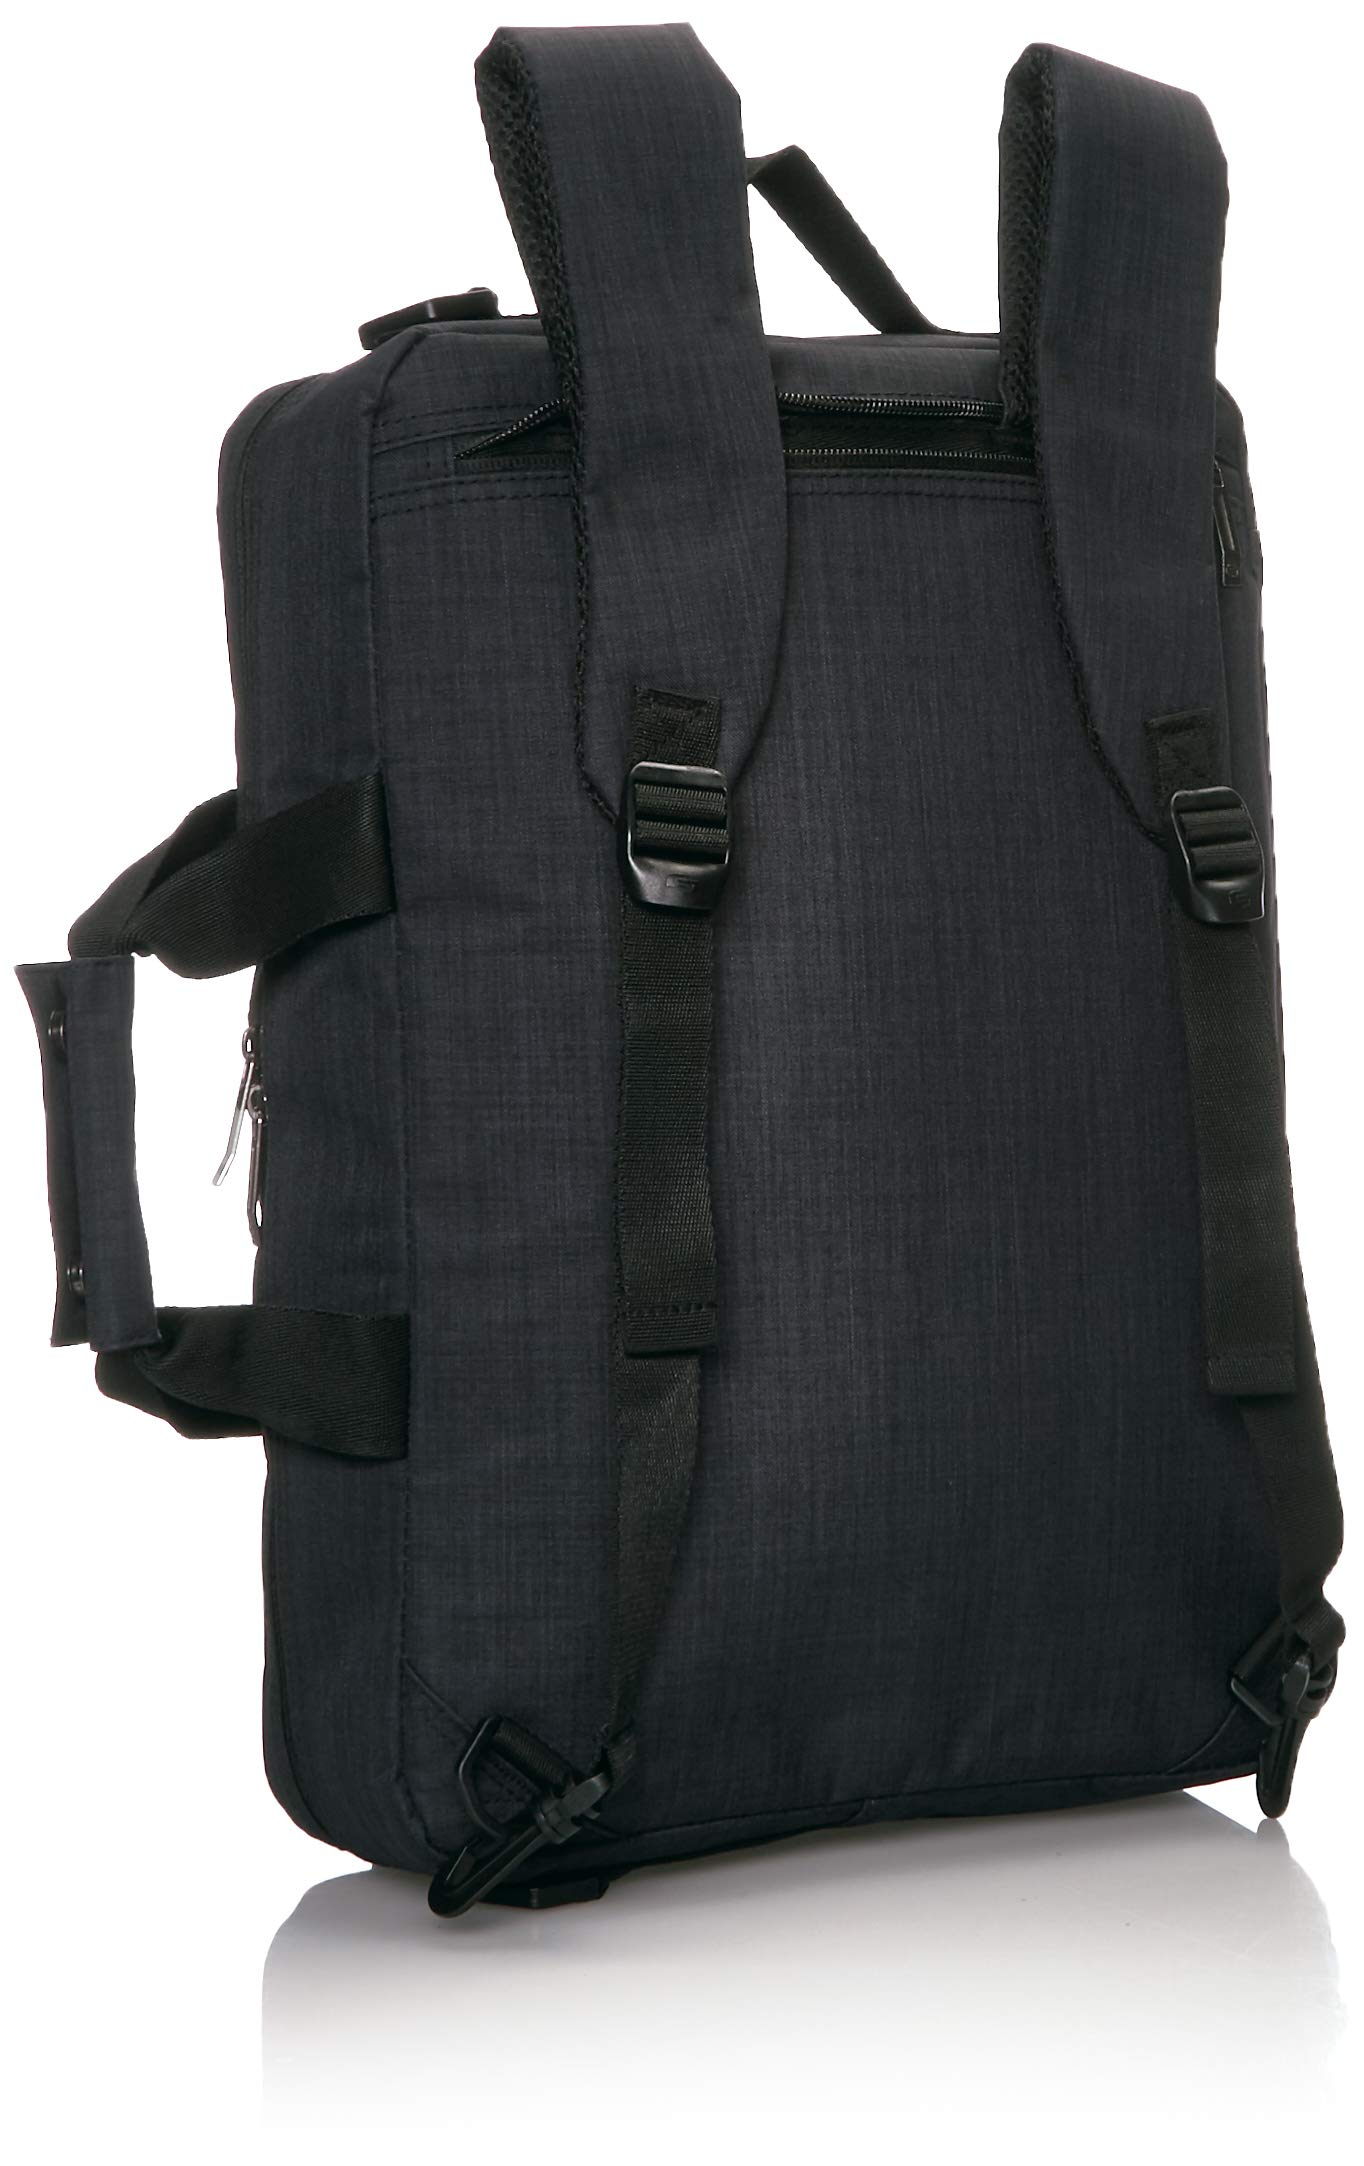 Solo Duane 15.6 Inch Laptop Hybrid Briefcase, Converts to Backpack, Slate, Amazon Exclusive by SOLO (Image #4)